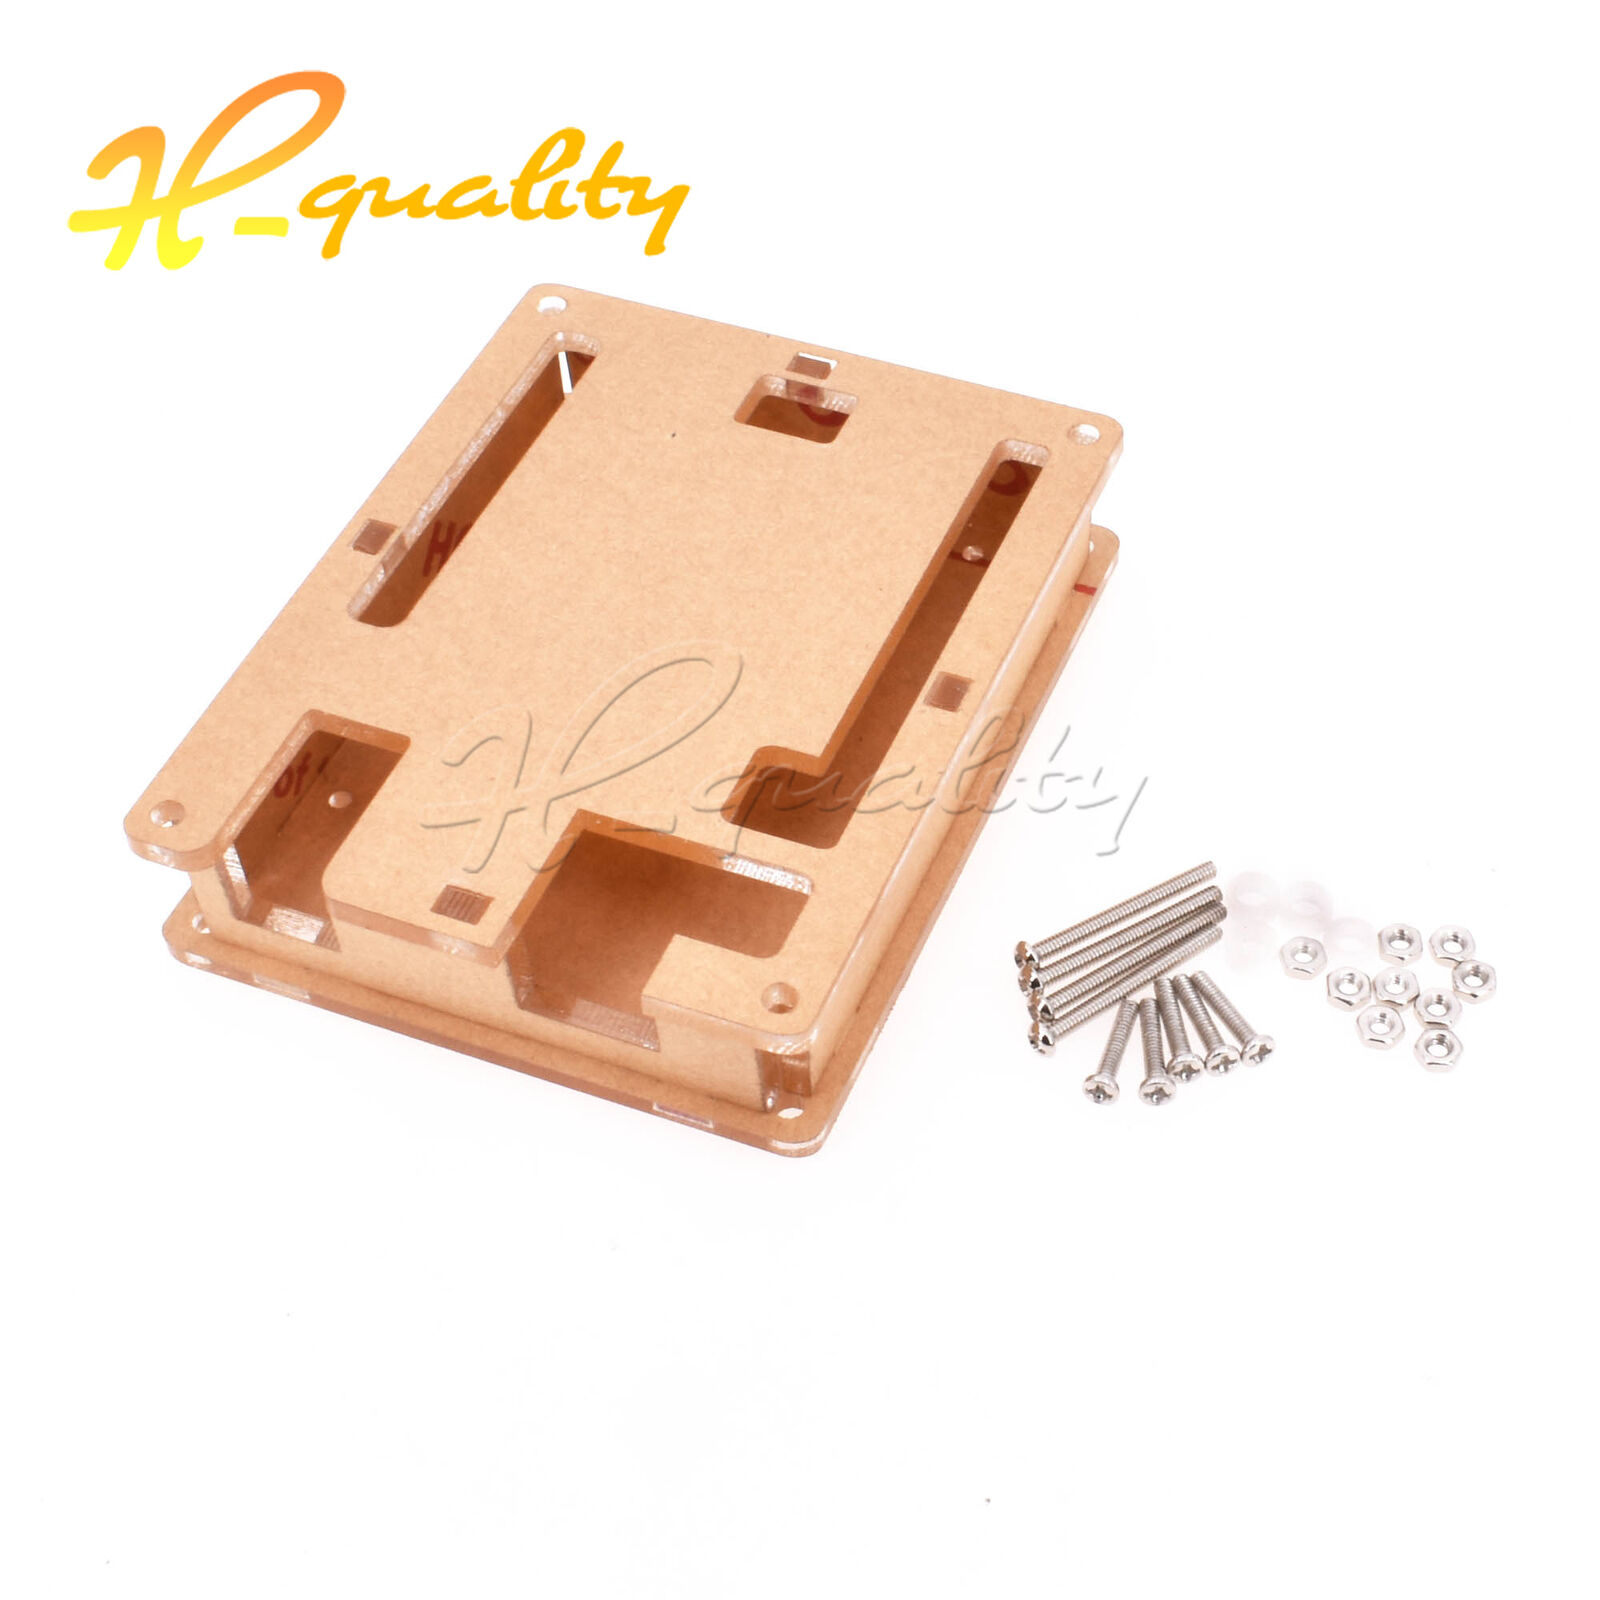 Acrylic Case Casing Arduino Uno Clear Box Enclosure Transparent Shell F R3 Board Module 1 Of 1free Shipping